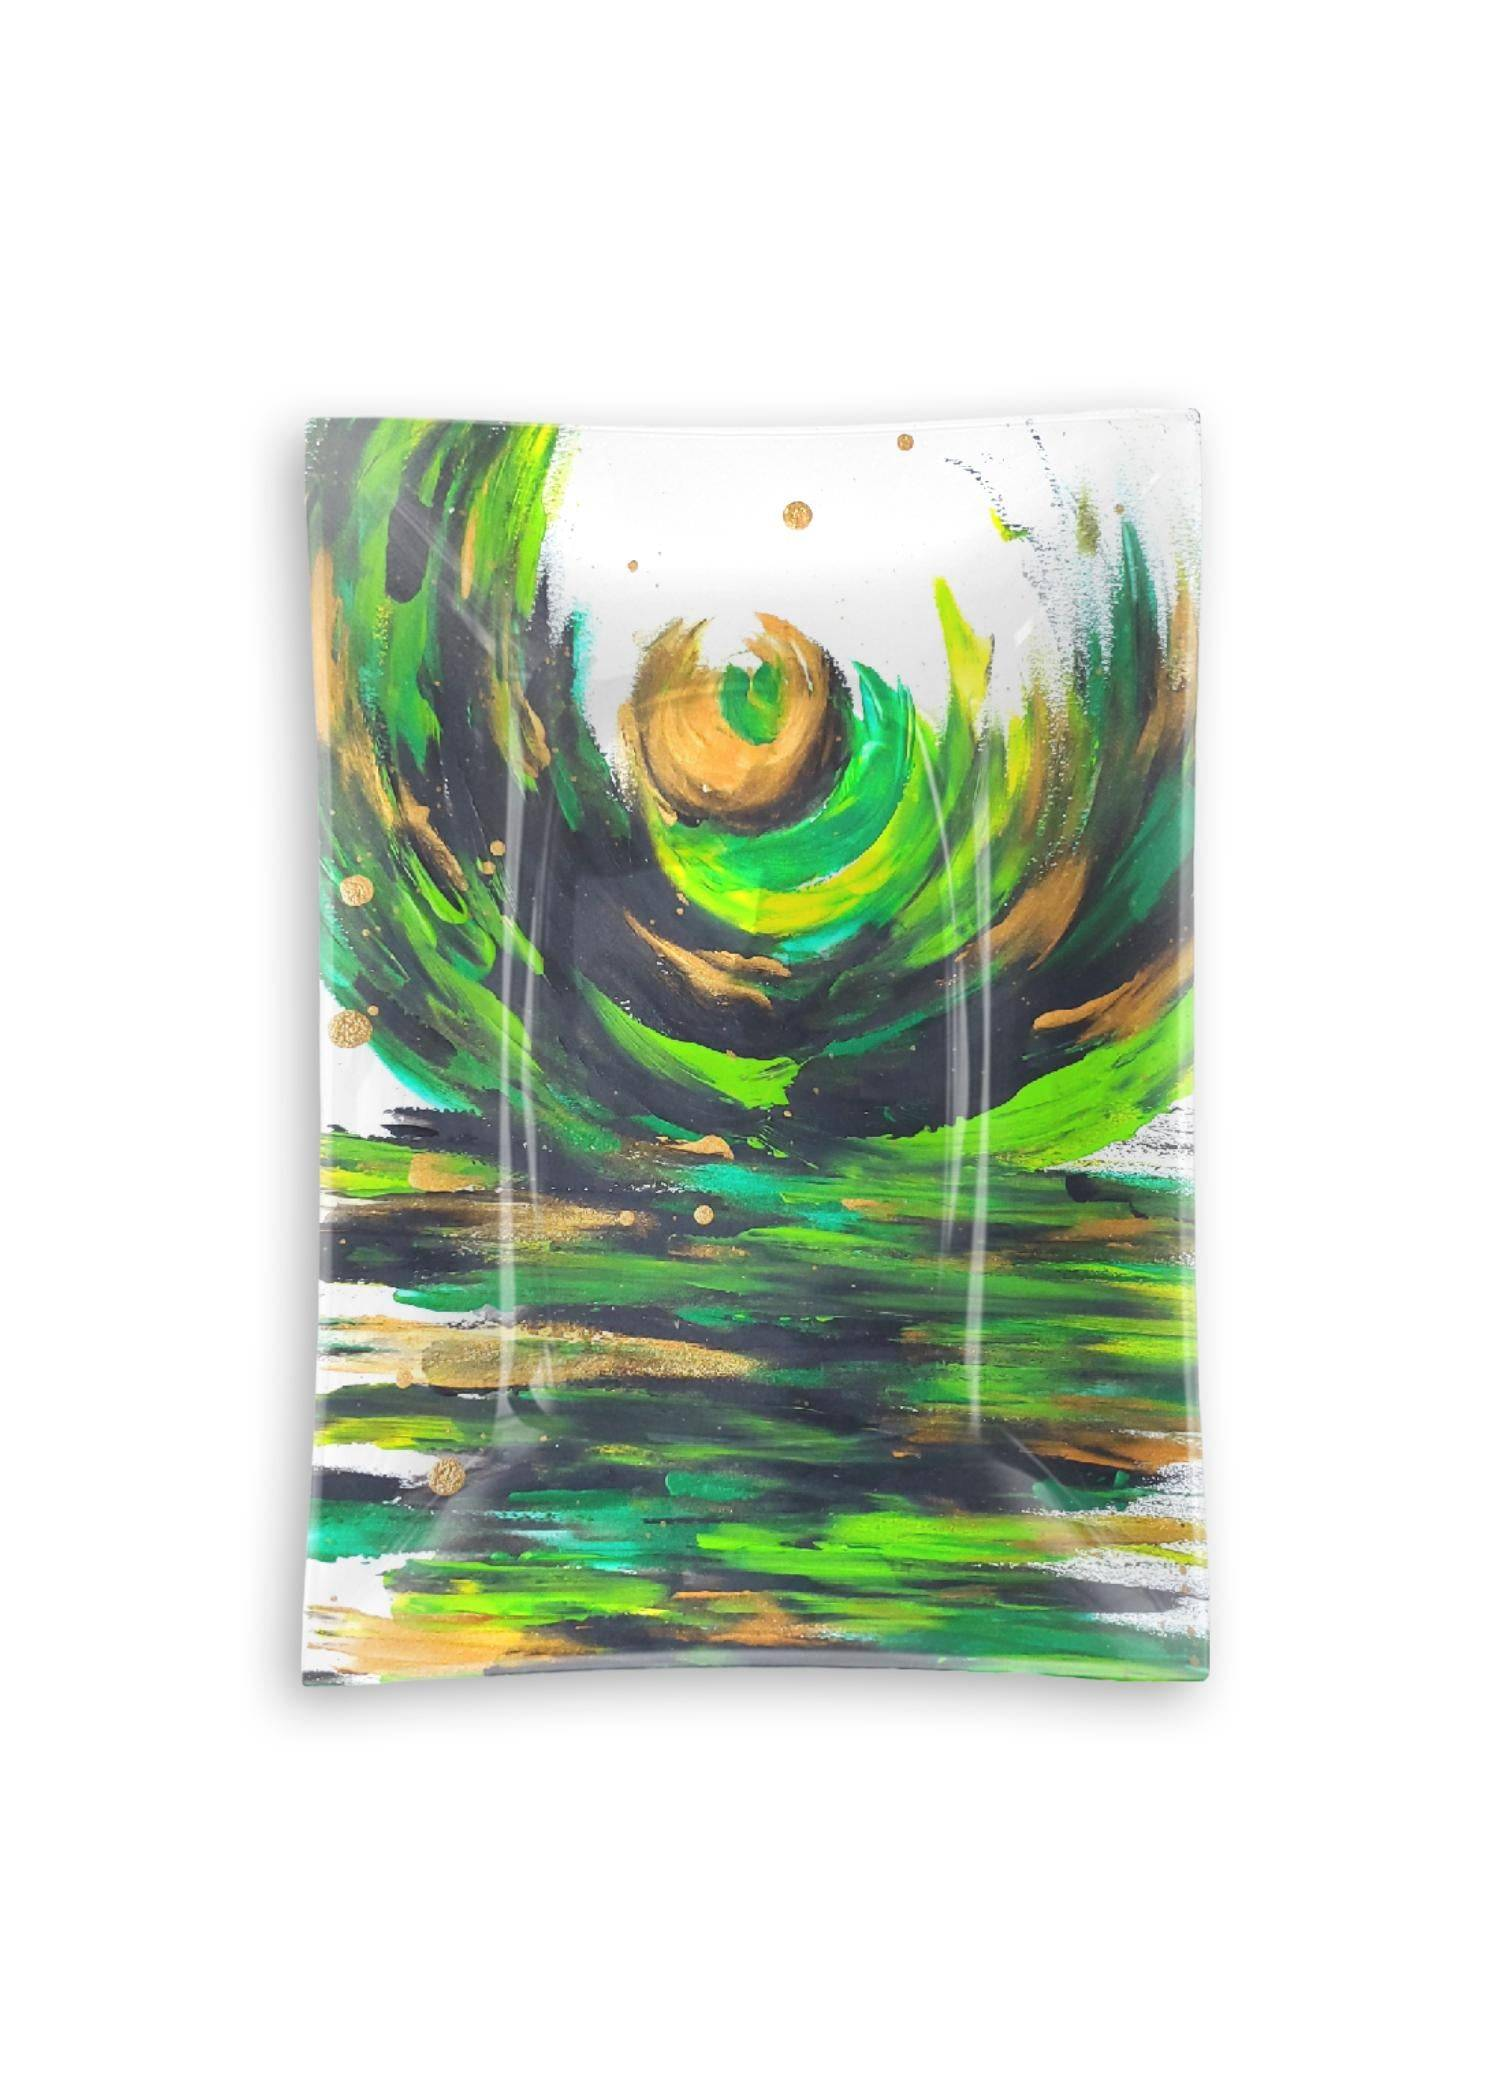 VIDA Oblong Glass Tray - Love Sees No Boundaries in Green/White/Yellow by VIDA Original Artist  - Size: Medium